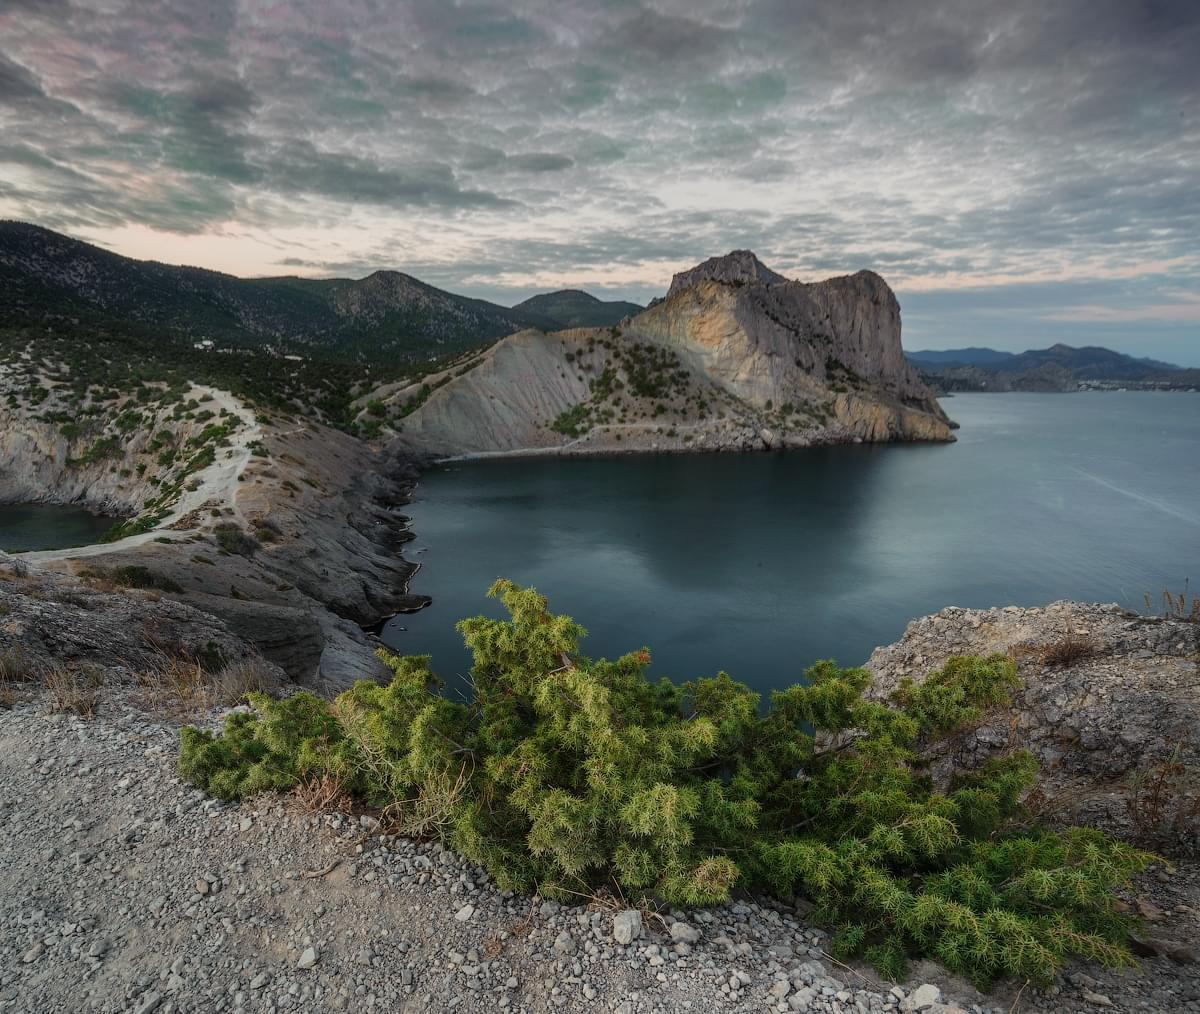 Photo tours of the Crimea - sunset landscape - Falcon mountain view